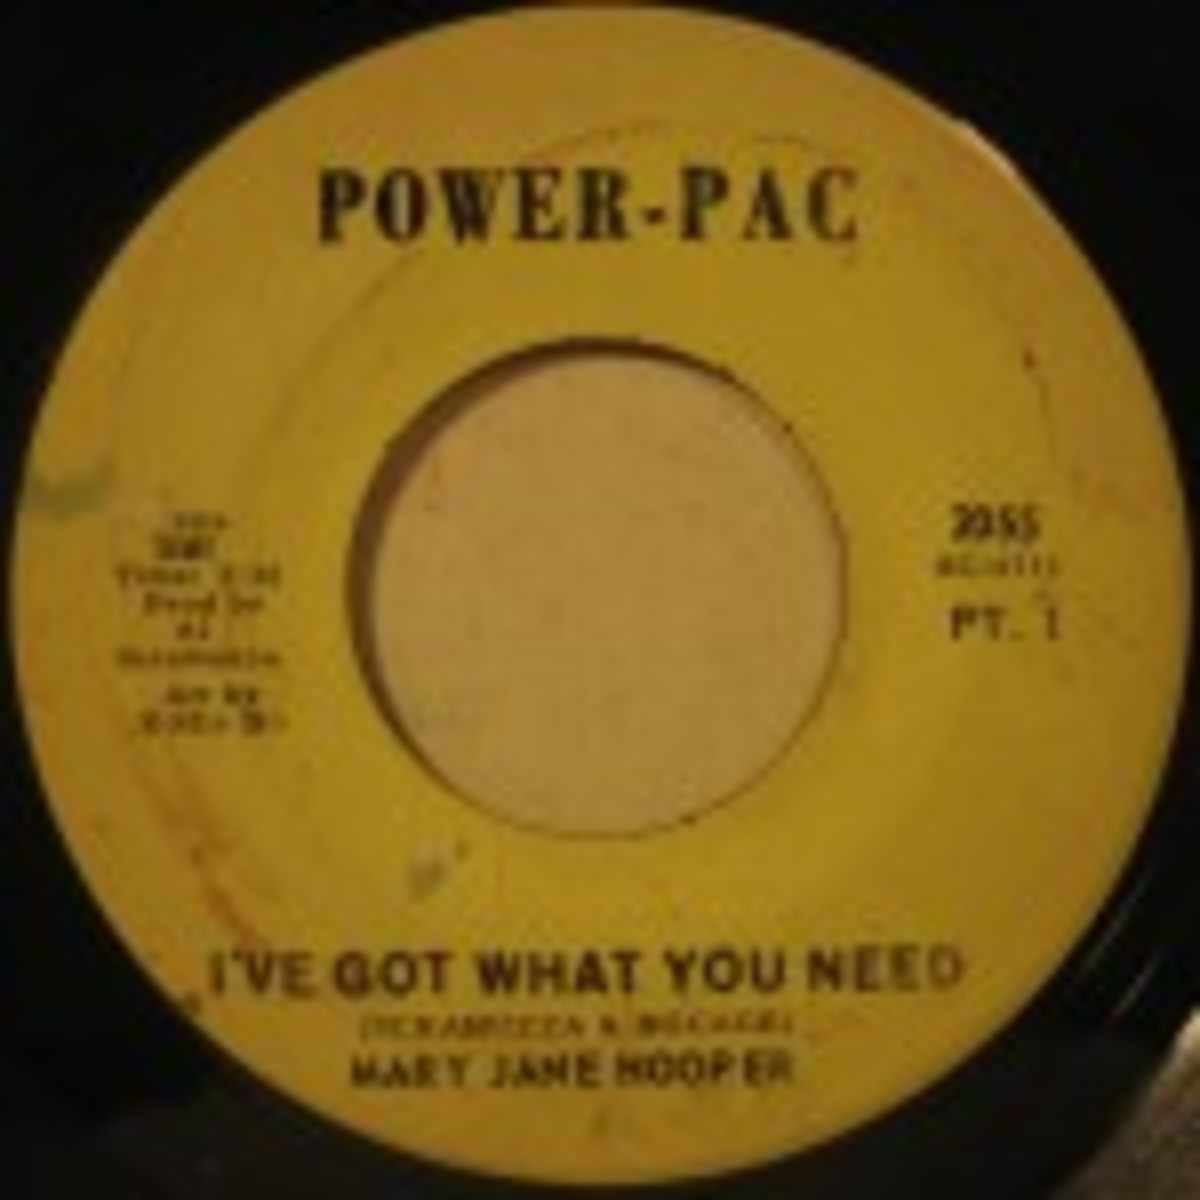 Mary Jane Hooper I've Got What You need Parts 1 and 2